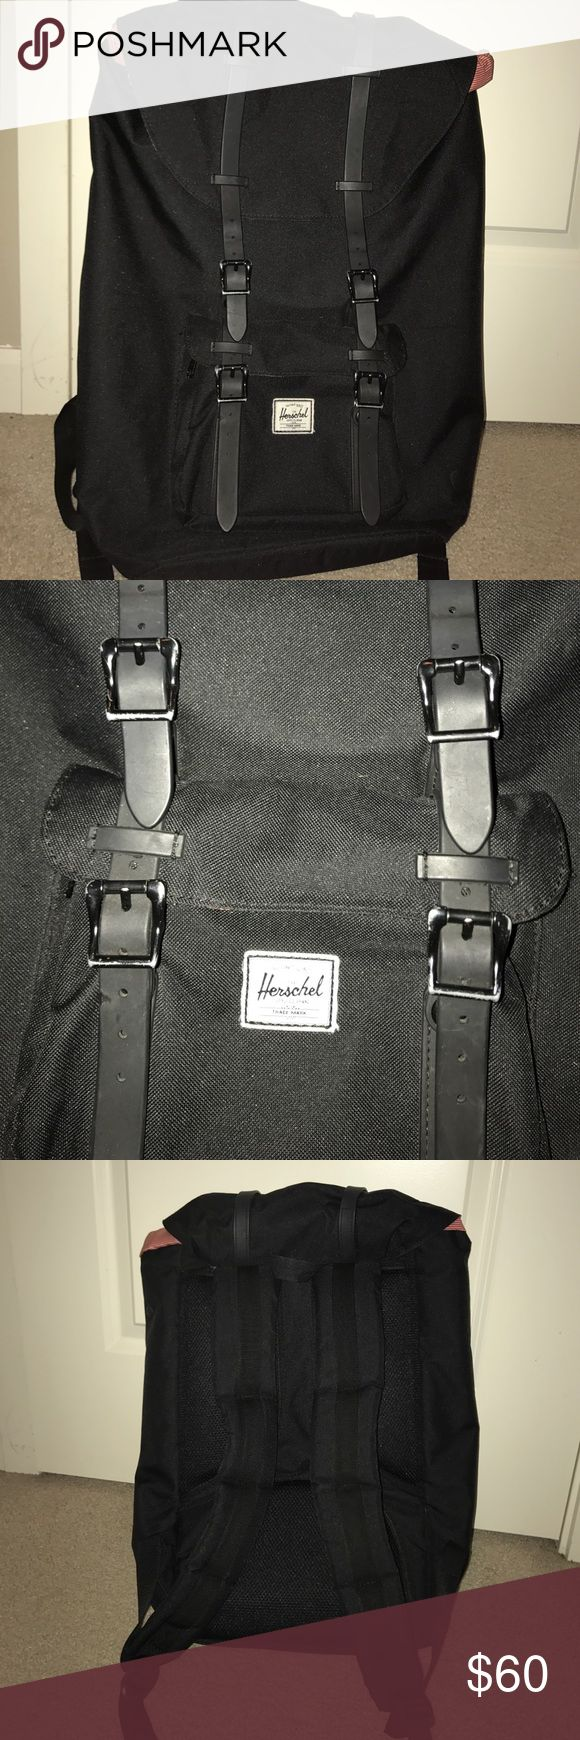 Herschel Little America Backpack Black backpack with black leather trim and red and white pinstripes inside. Immaculate, but slight wear to metal buckles on lower pouch (pictured). Herschel Supply Company Bags Backpacks